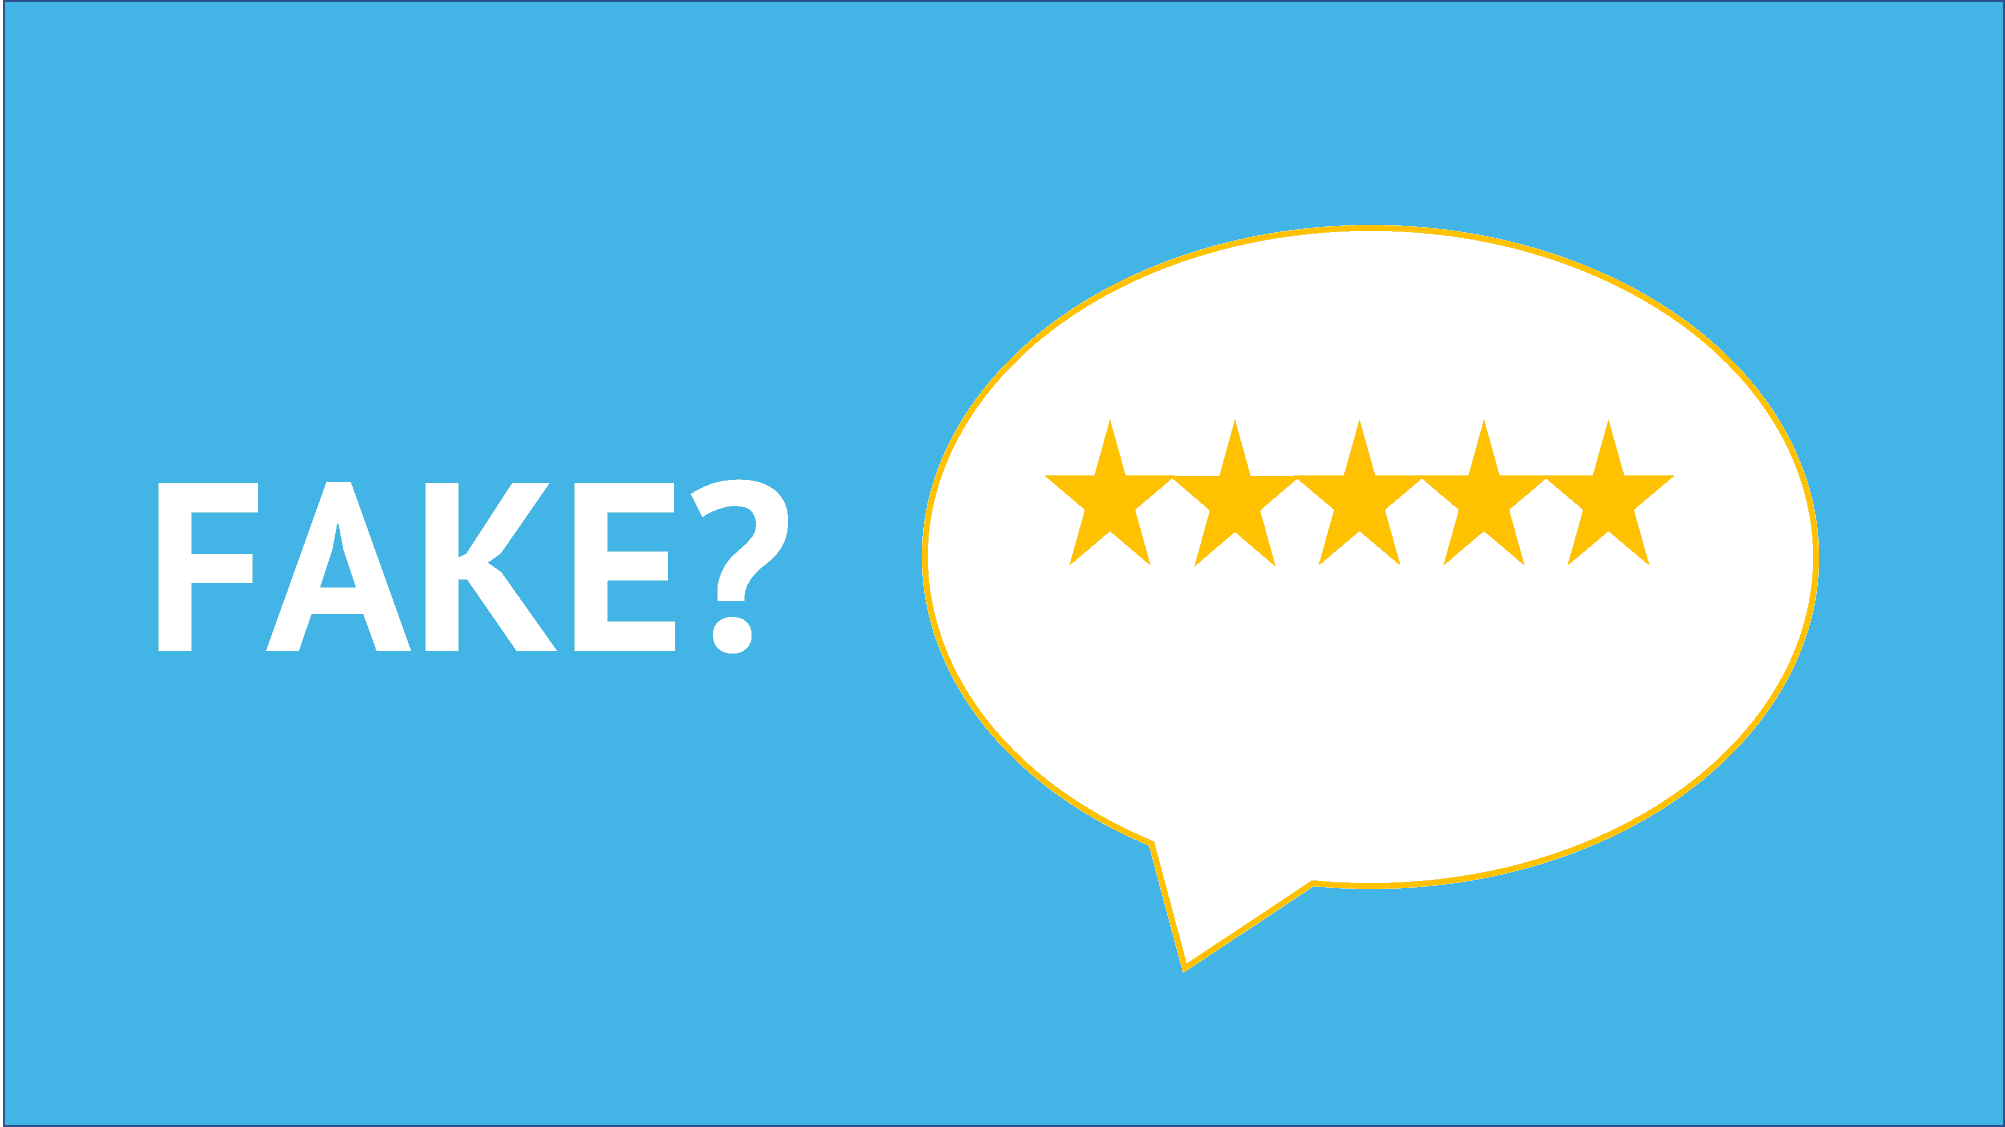 fake reviews - 5 Ways to Spot Illegal Reviews and What to Do about Them